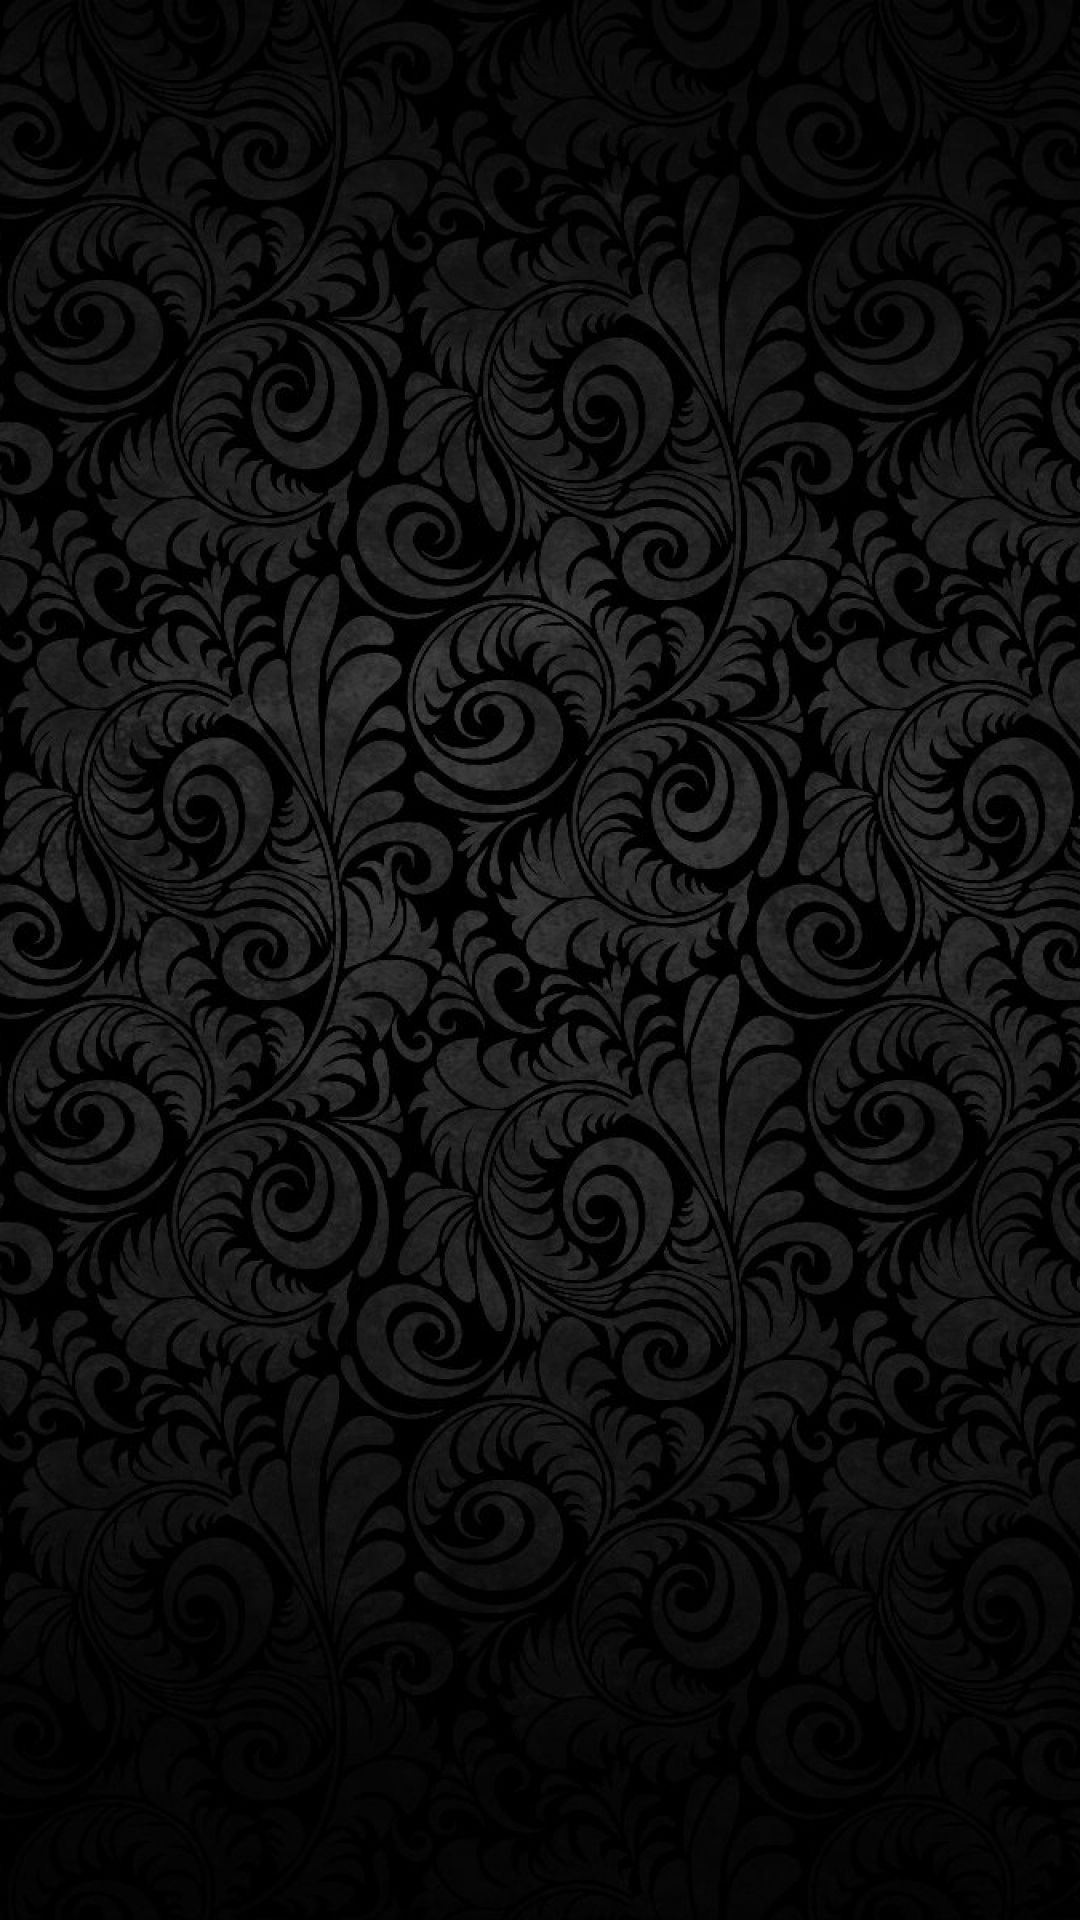 Iphone 6s Black Flower Abstract Wallpaper Hdiphone 6s Black Flower Abstract Classy Wallpaper Iphone 6 Plus Wallpaper Phone Wallpaper